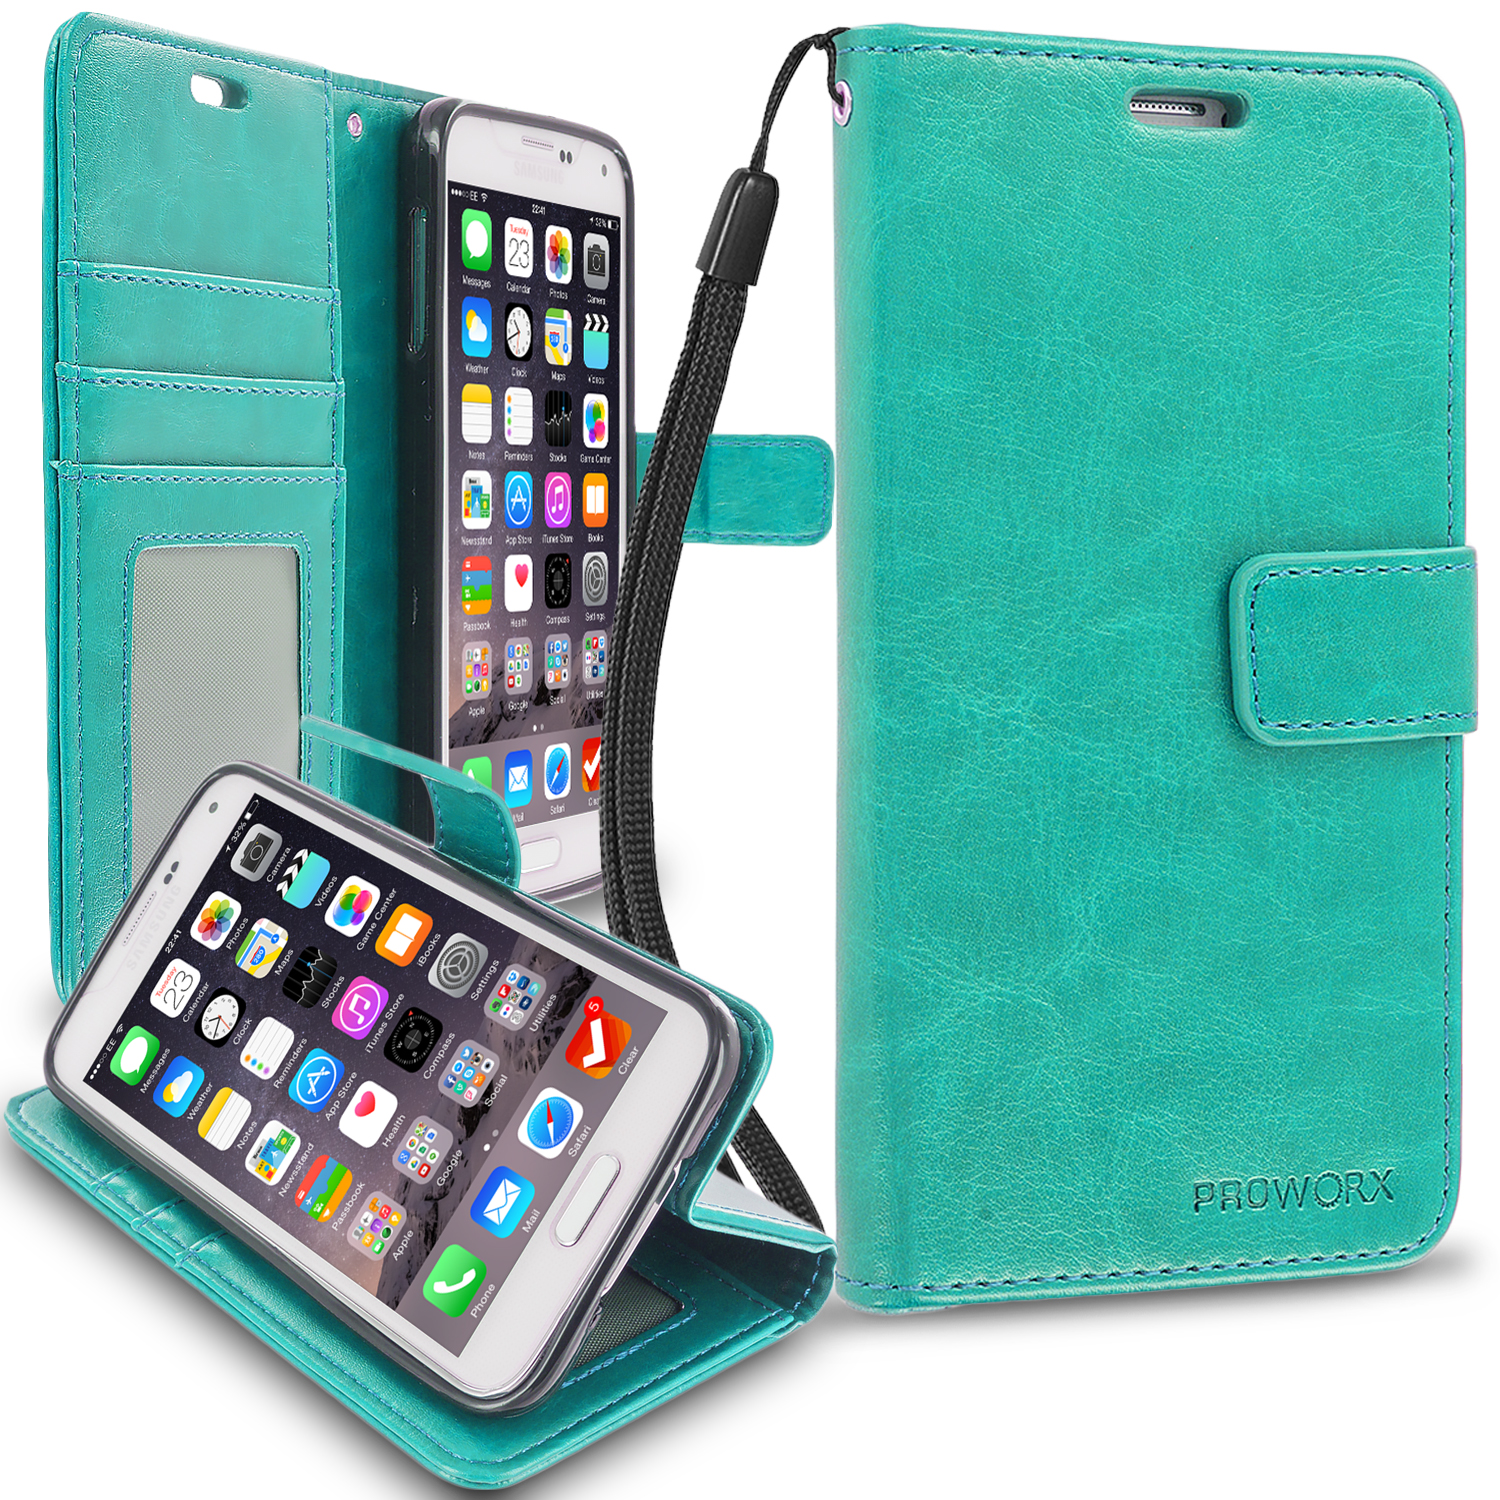 Samsung Galaxy S5 Mint Green ProWorx Wallet Case Luxury PU Leather Case Cover With Card Slots & Stand